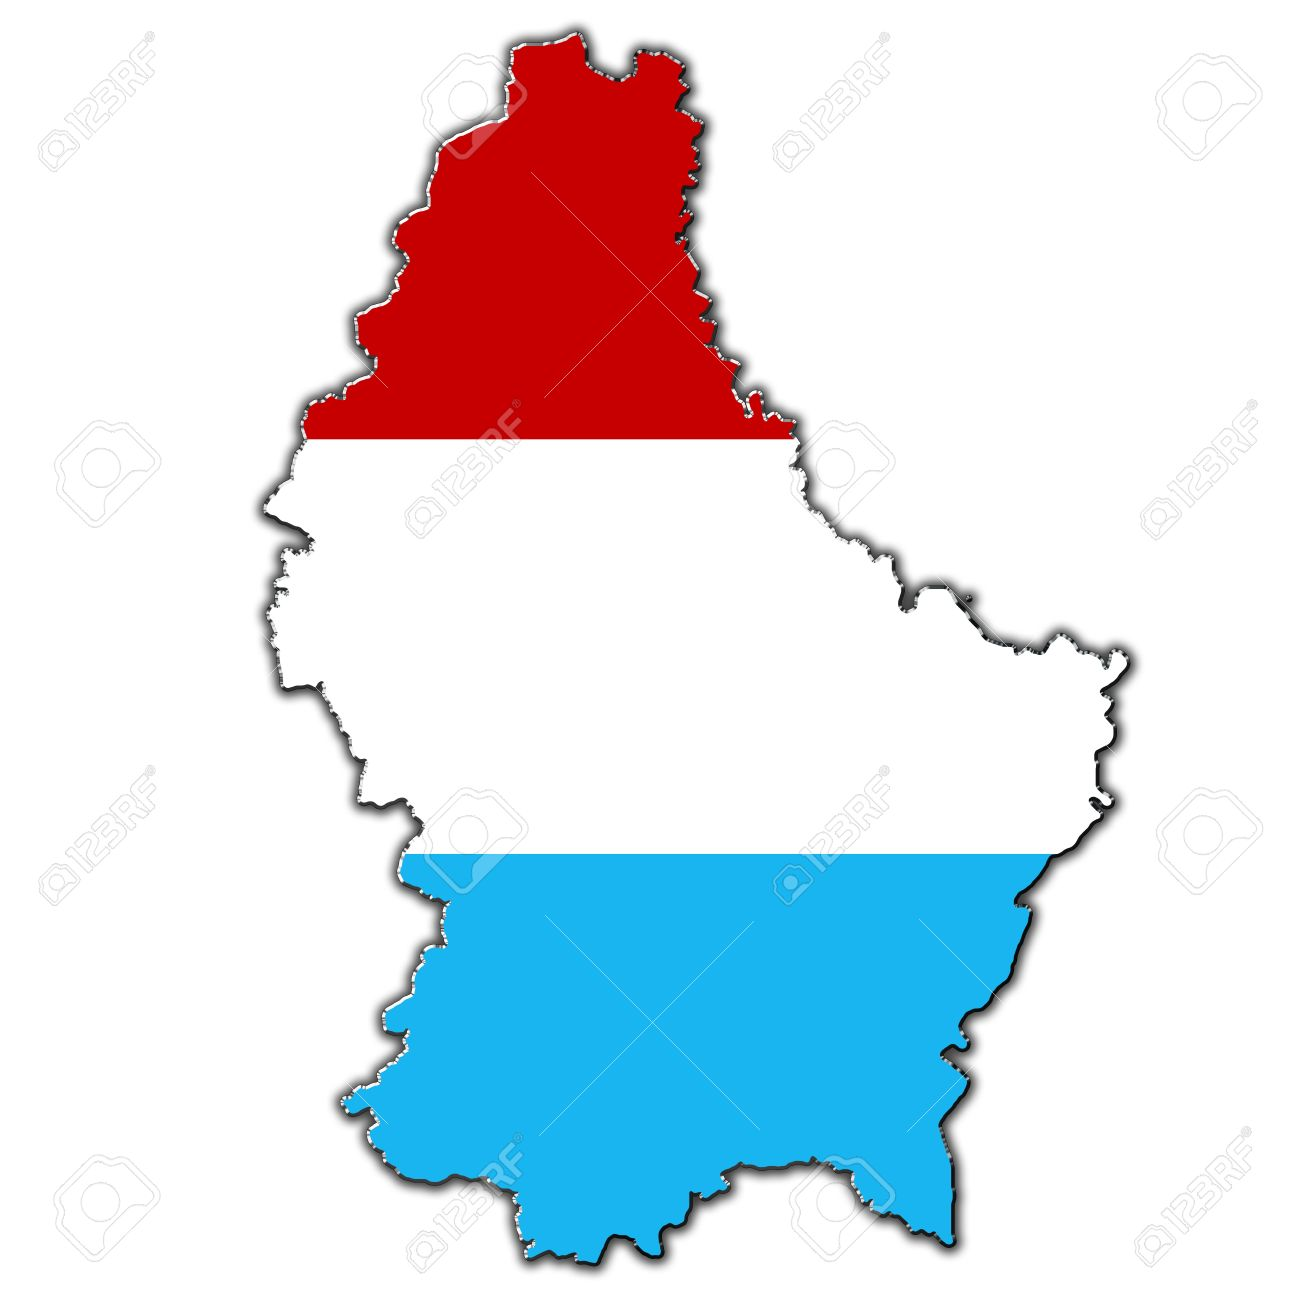 Luxembourg map clipart.